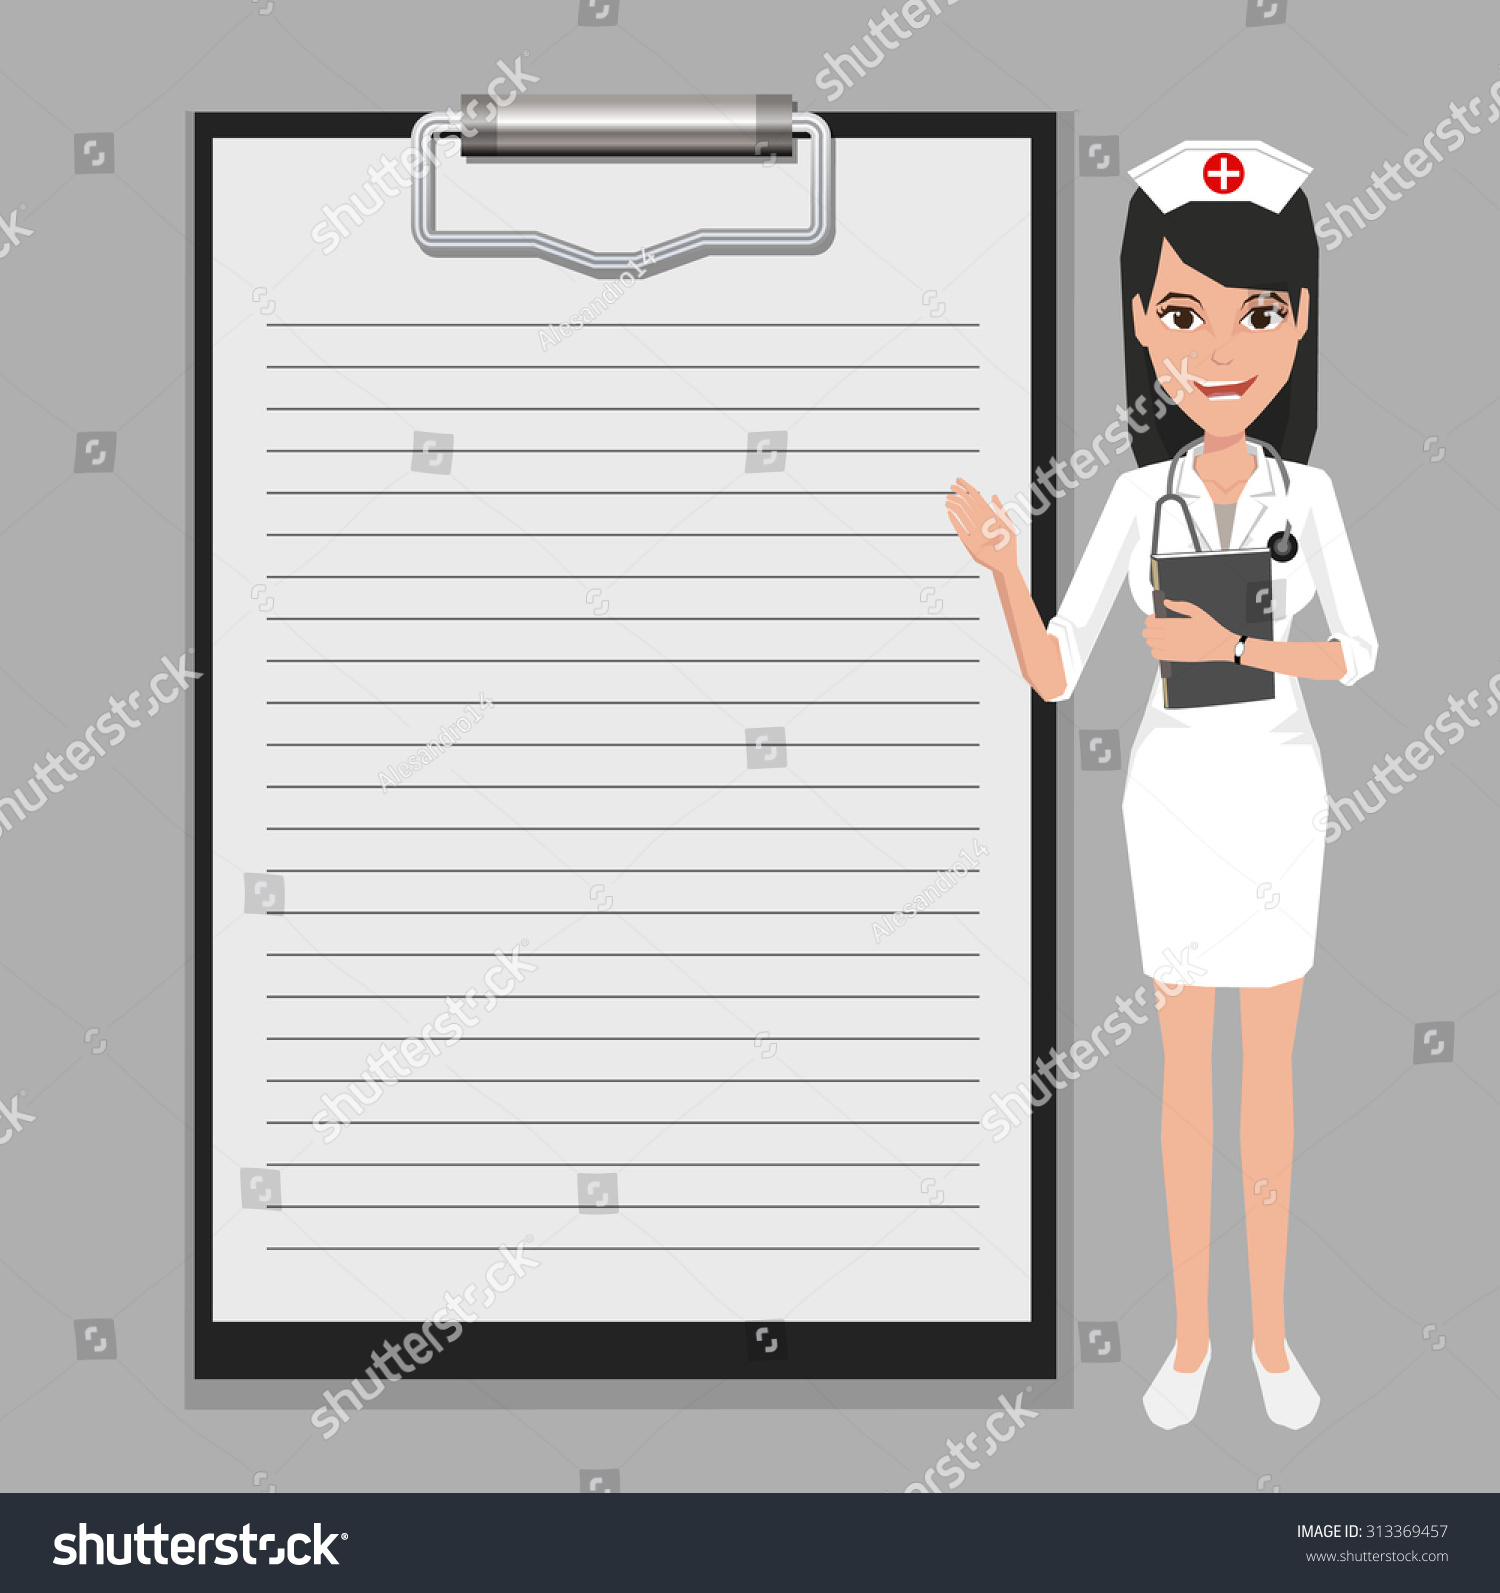 Character Design Presentation : Nurse showing blank clipboard sign for presentation